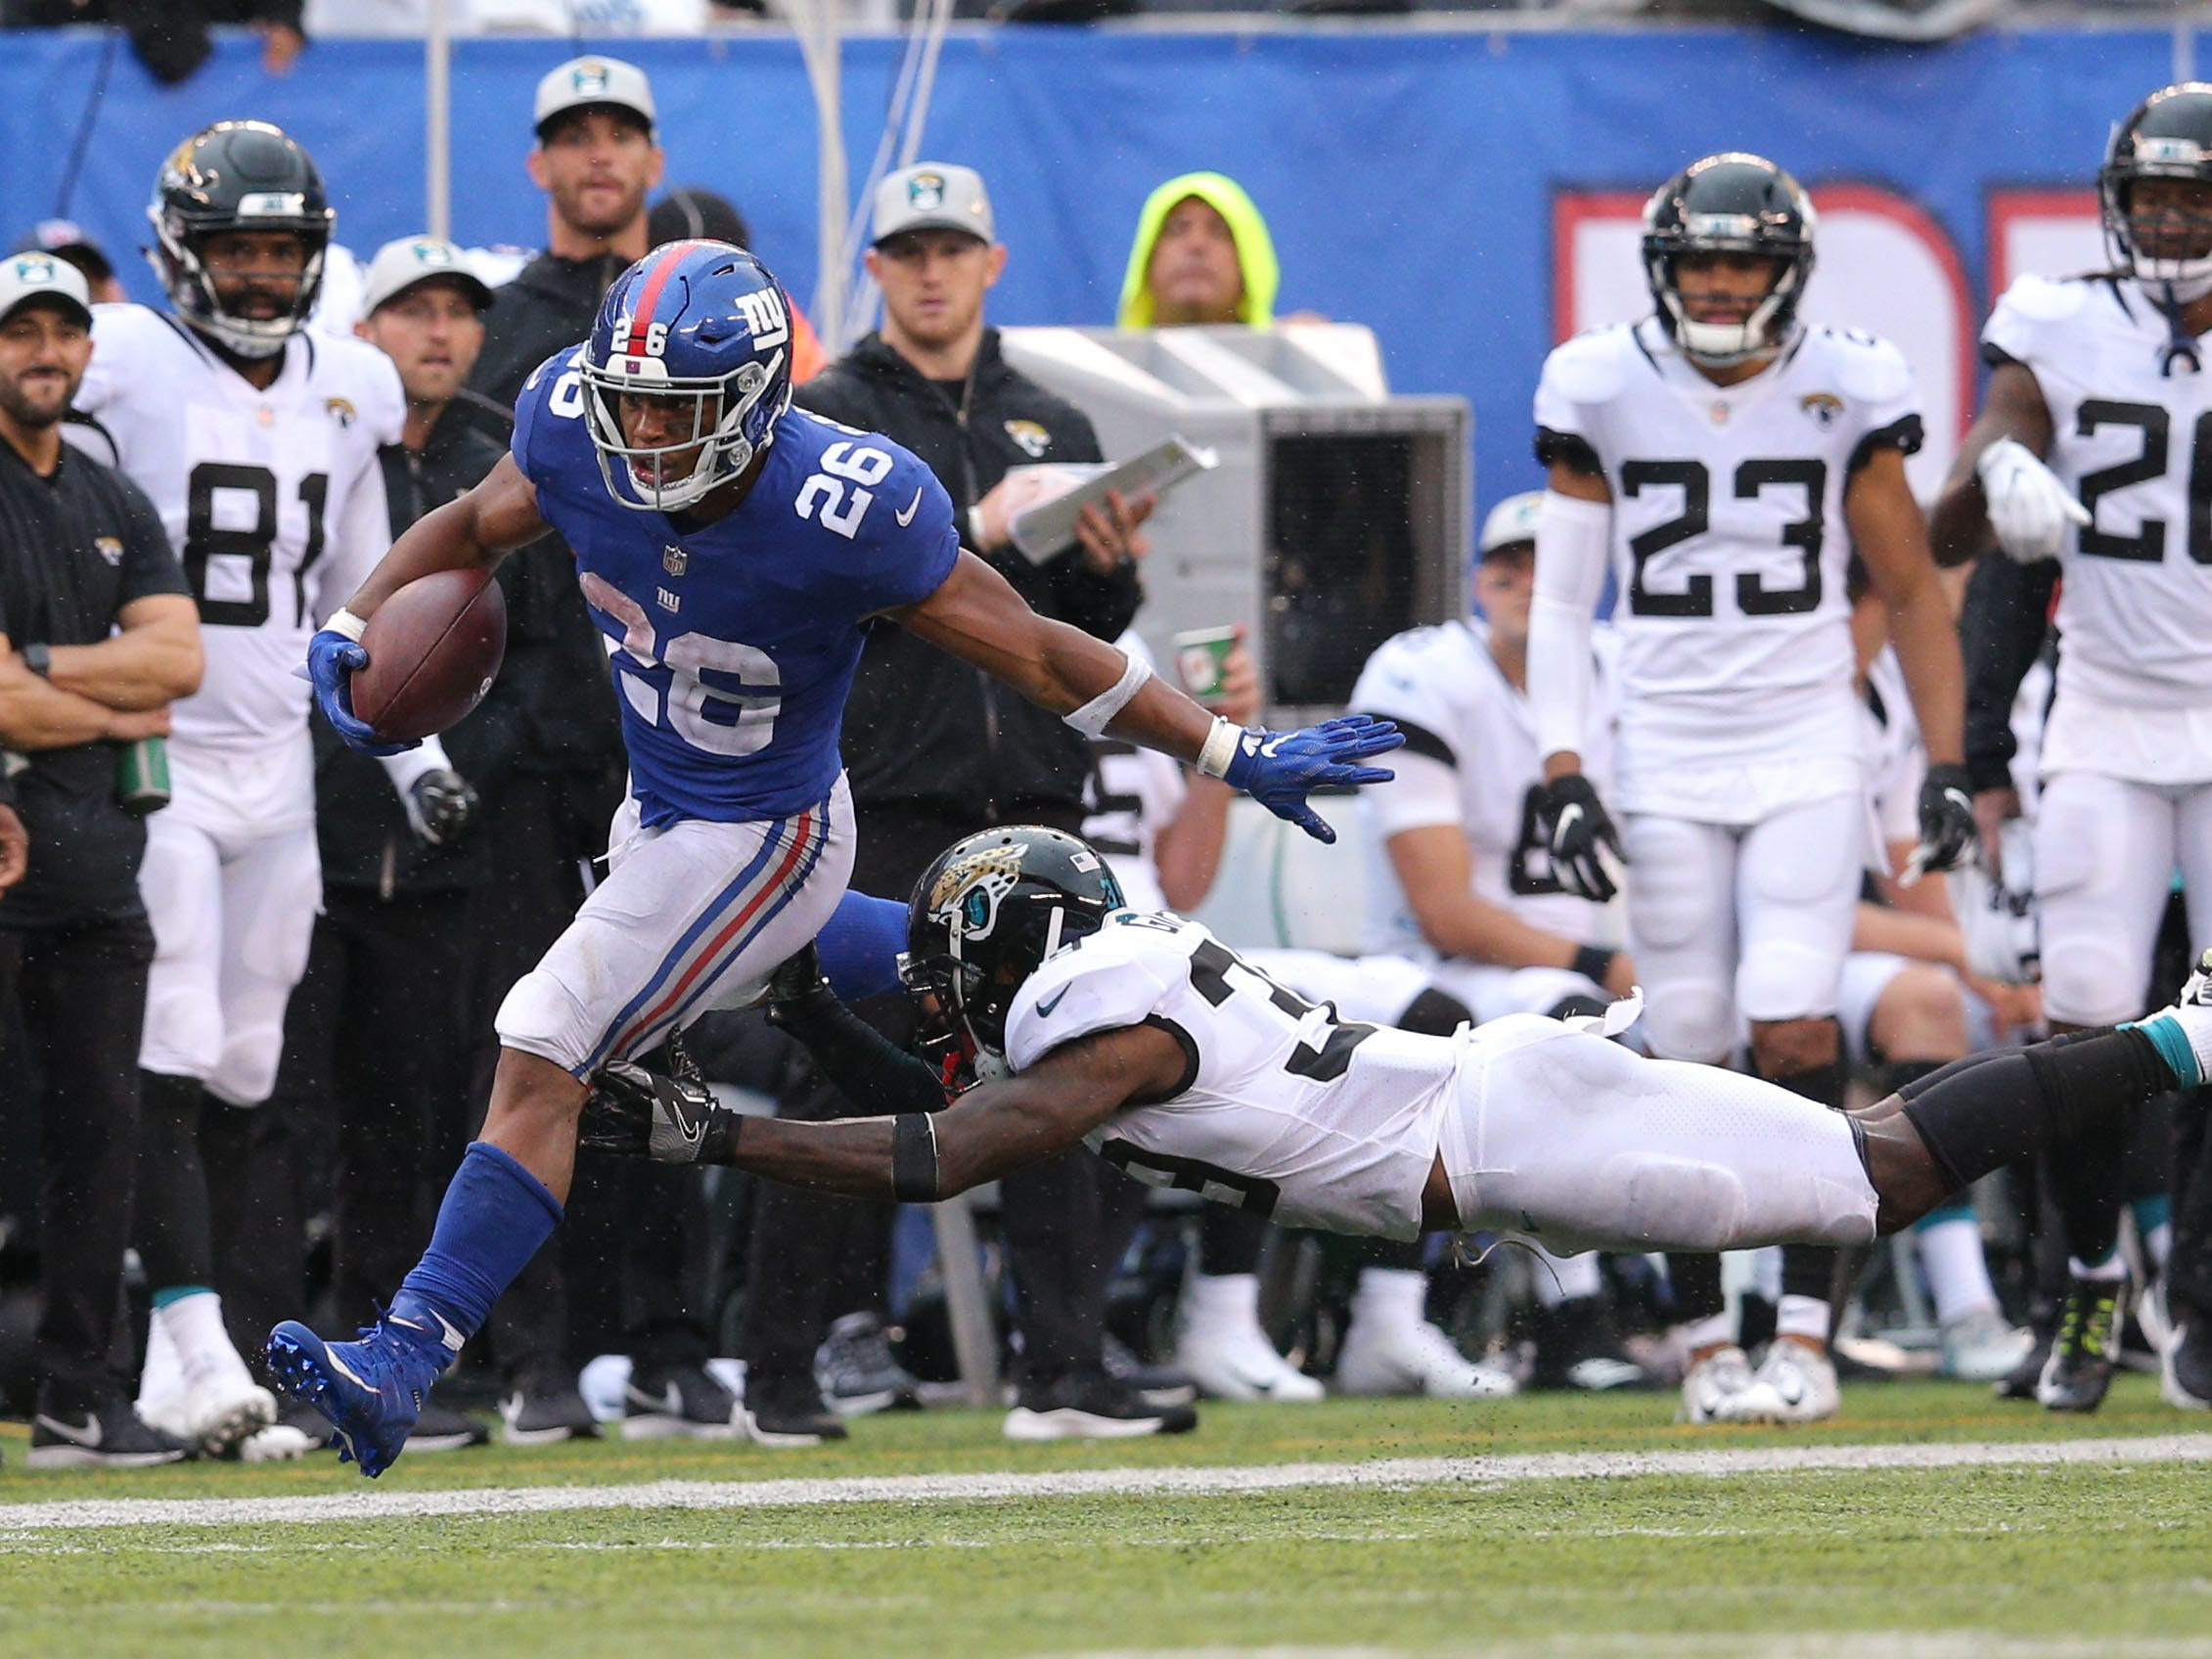 Sep 9, 2018; East Rutherford, NJ, USA; New York Giants running back Saquon Barkley (26) runs for a touchdown against Jacksonville Jaguars defensive back Tashaun Gipson (39) during the fourth quarter at MetLife Stadium. The touchdown was the first of his NFL career. Mandatory Credit: Brad Penner-USA TODAY Sports